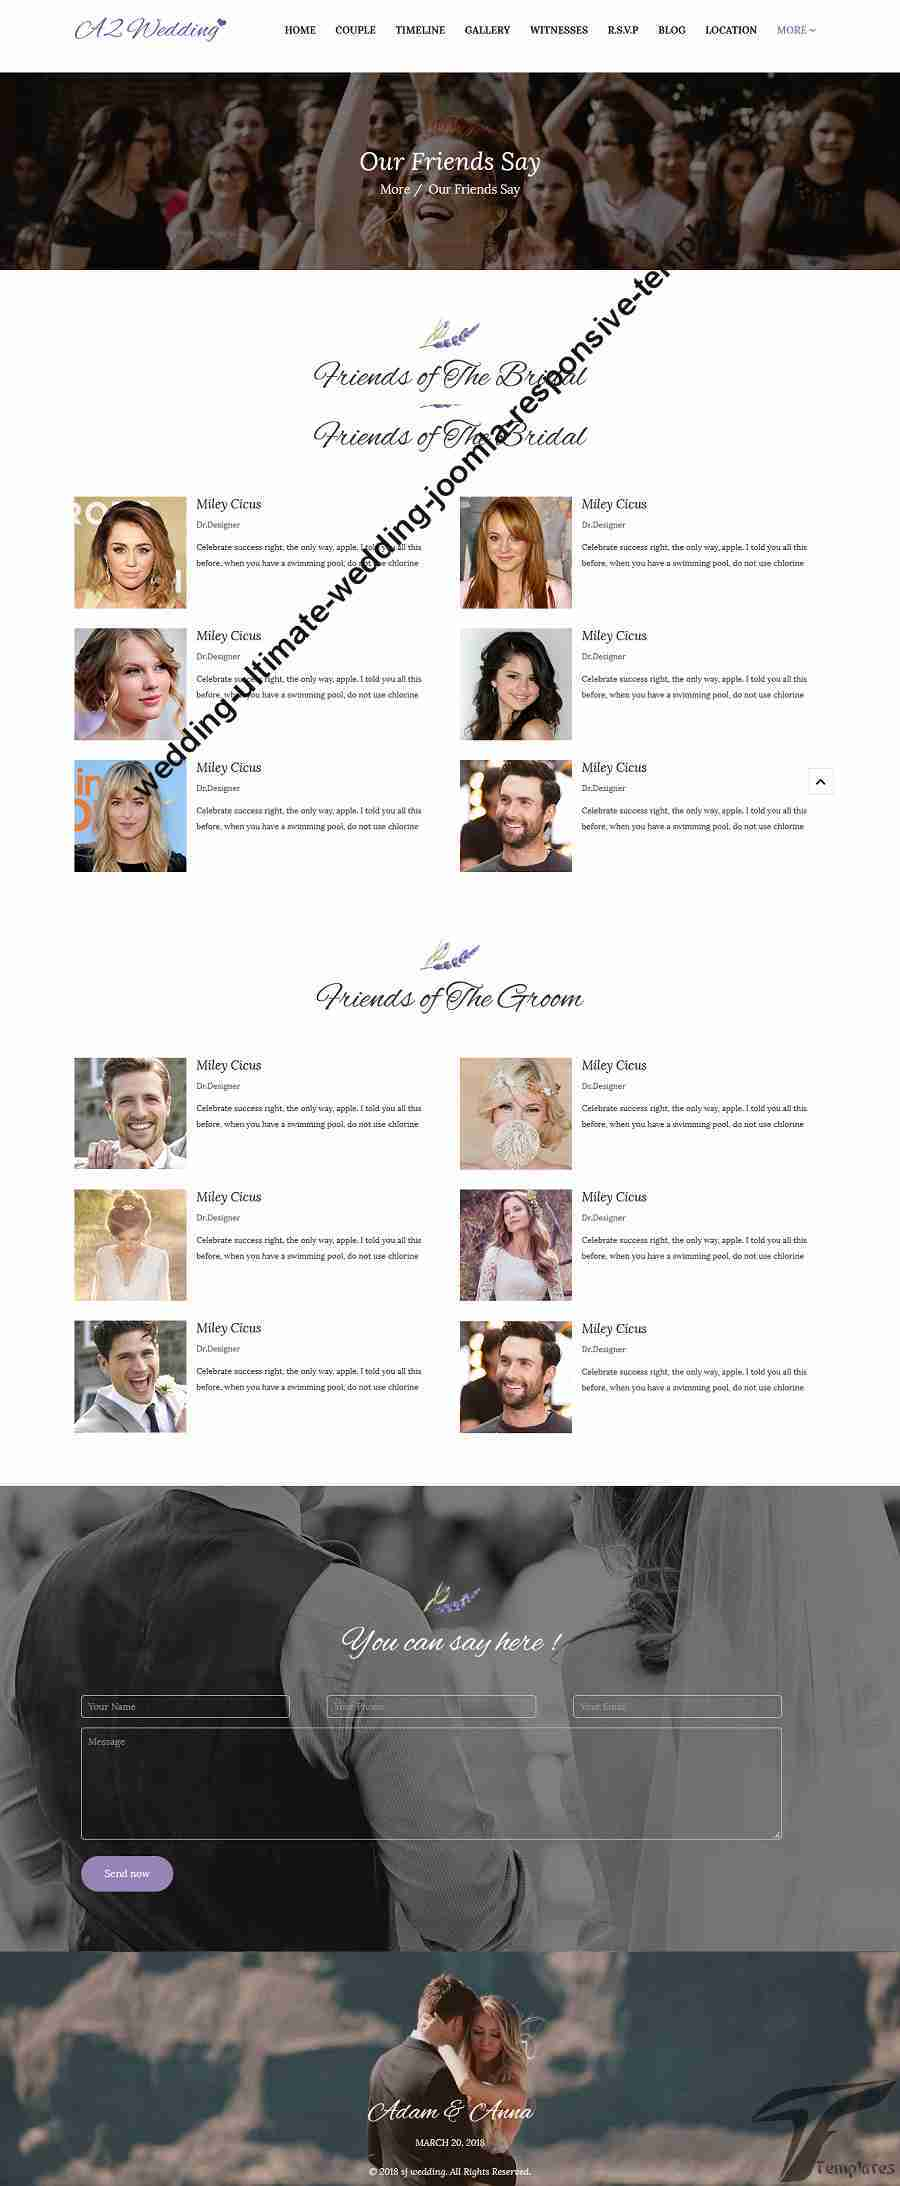 https://images.besthemes.com/images/h1_wedding-ultimate-wedding-joomla-responsive-template6-_-244103030/06_ourfriendsay.png